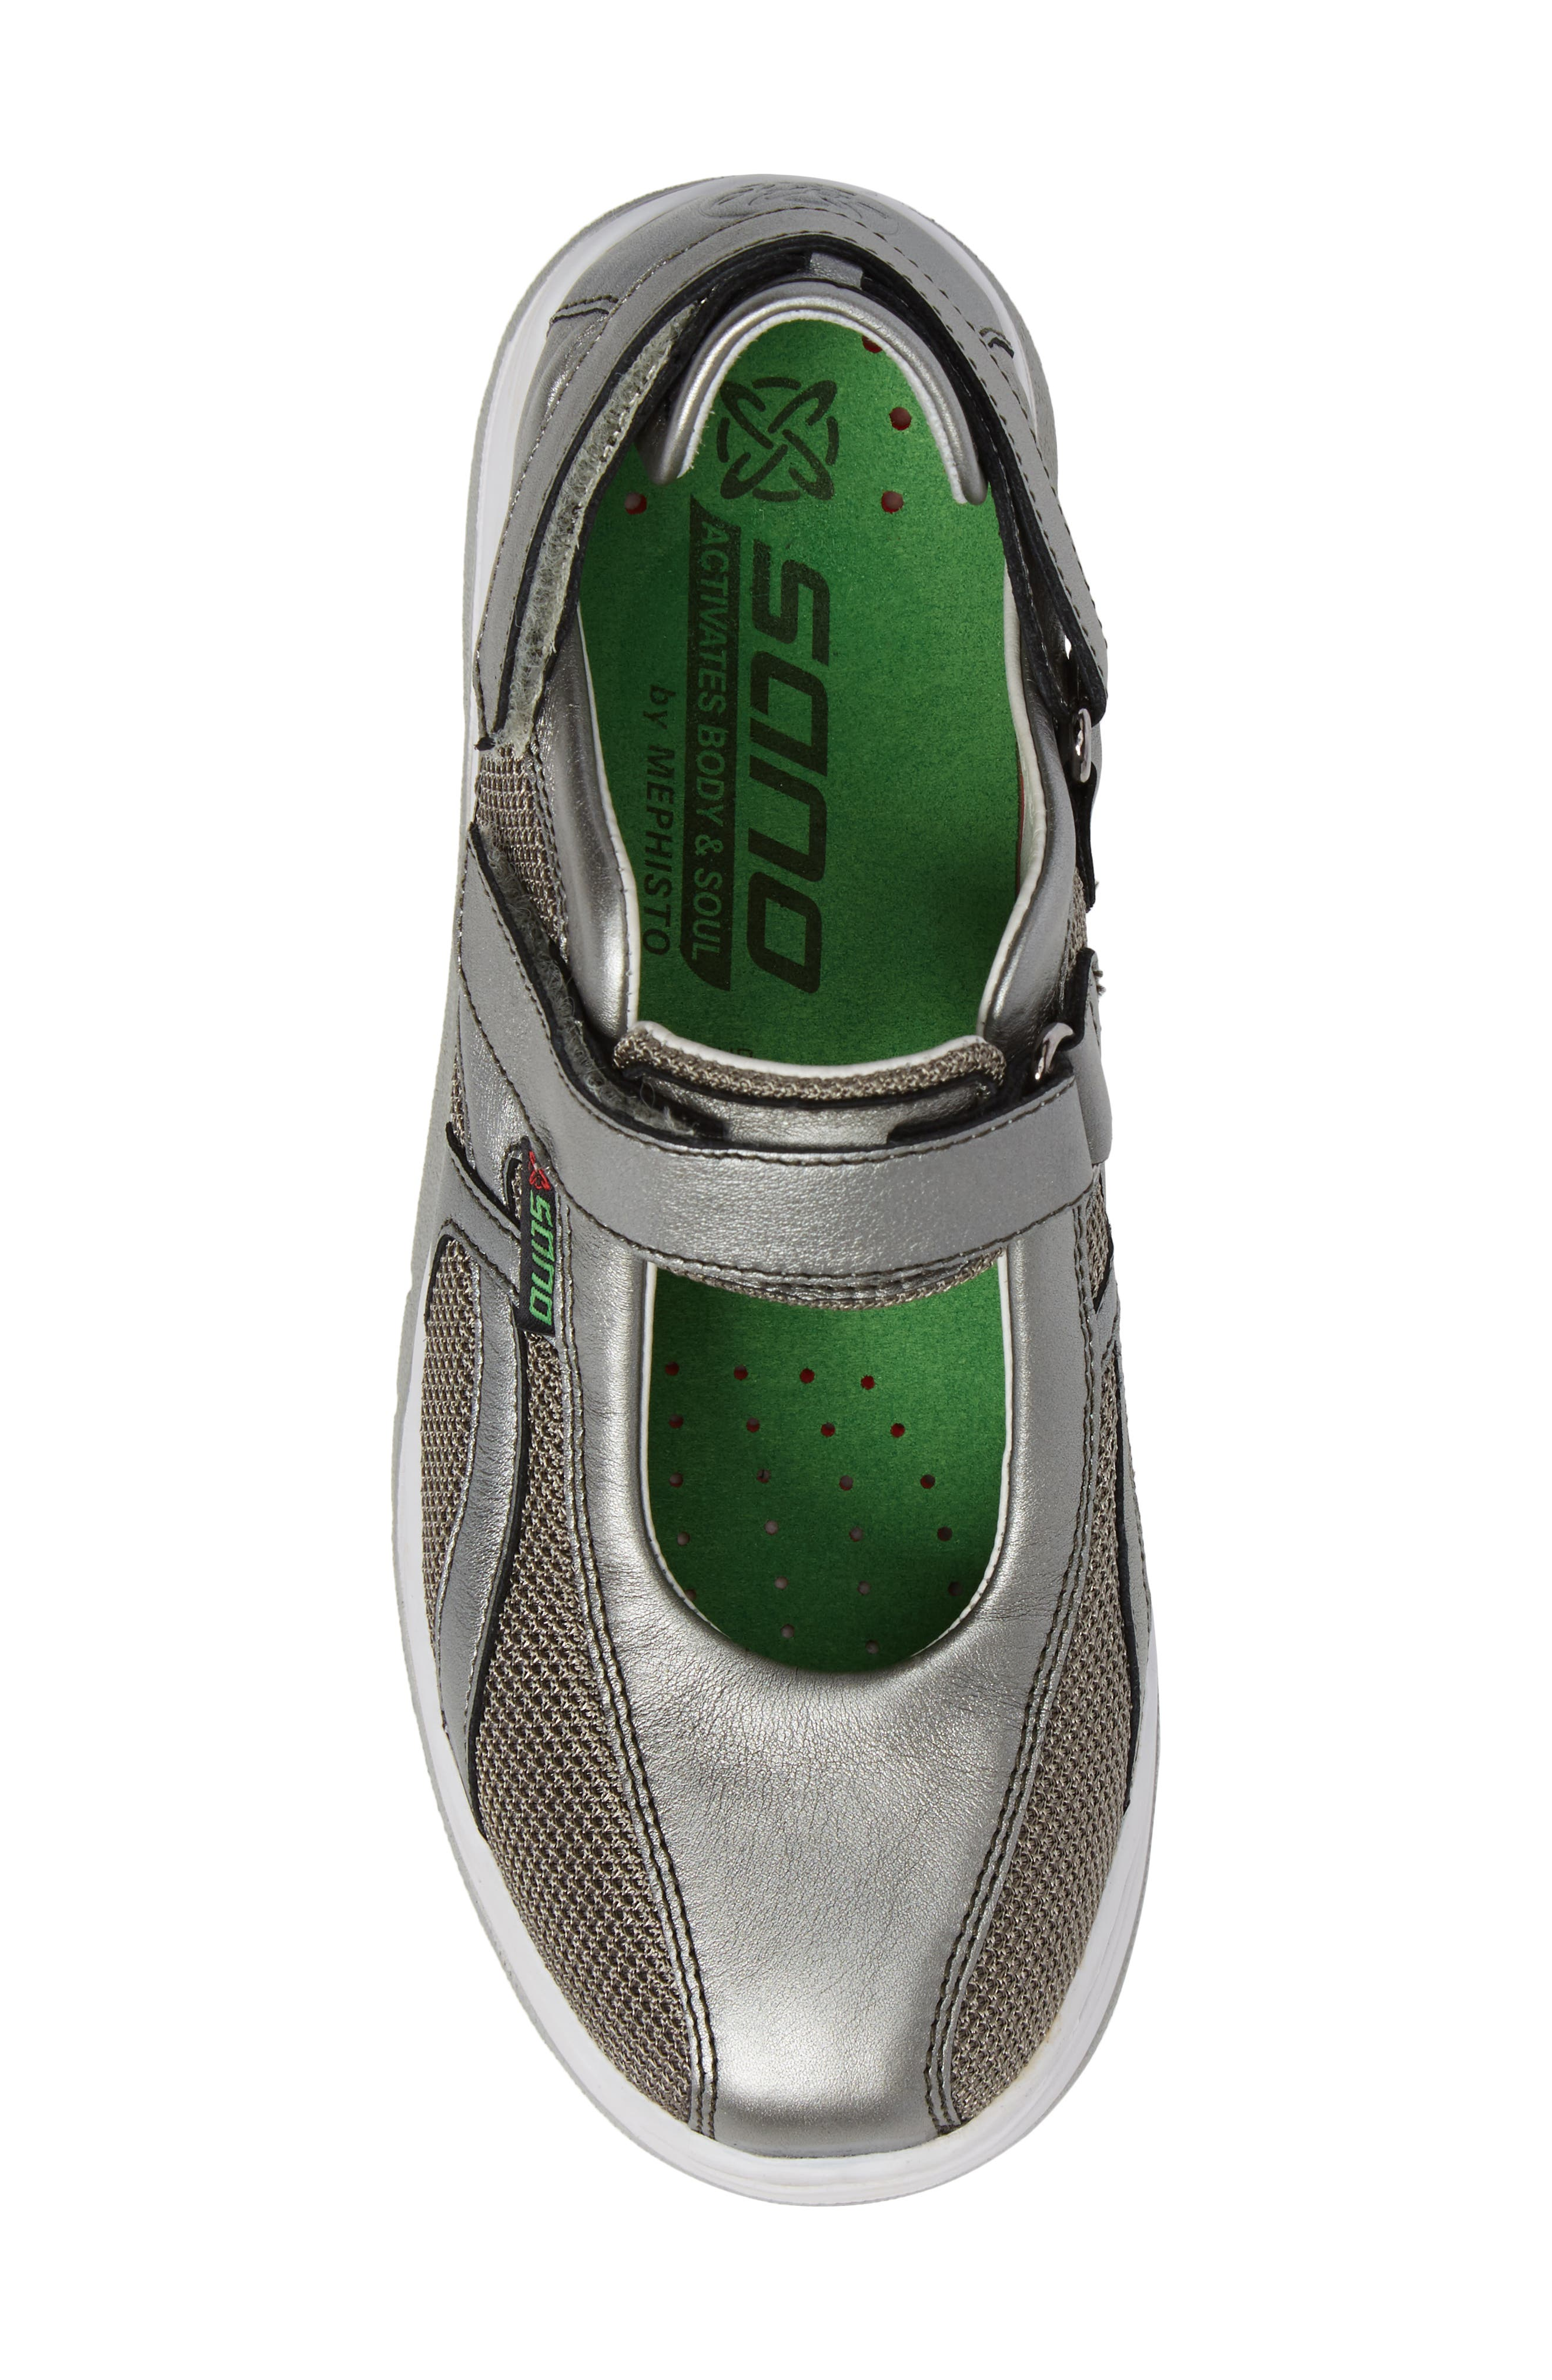 Sano by Mephisto 'Excess' Walking Shoe,                             Alternate thumbnail 14, color,